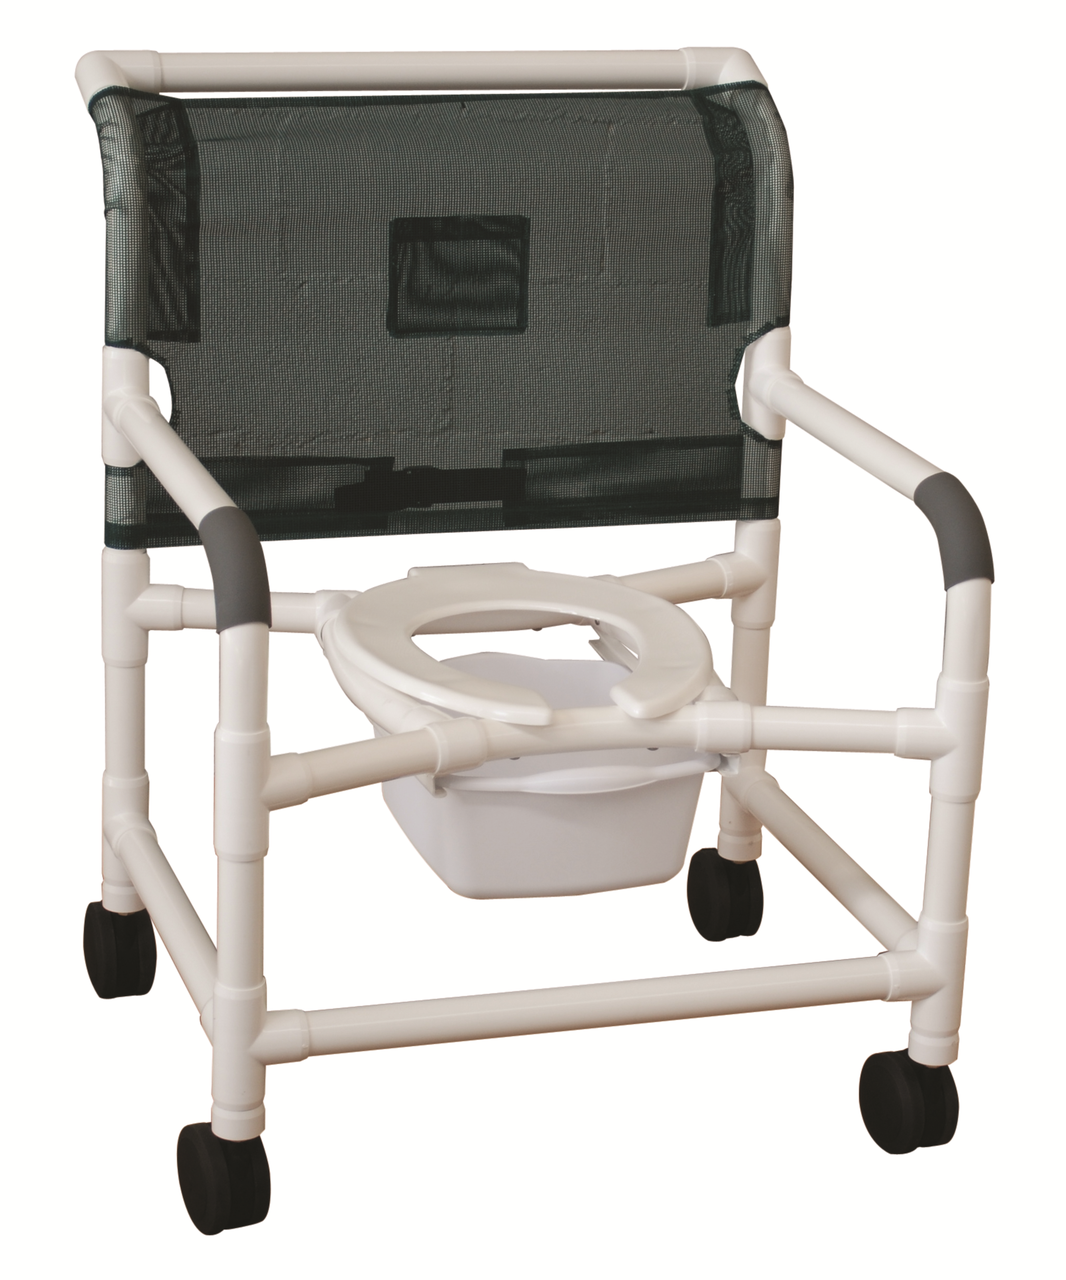 Rolling Shower Chair Super Wide Heavy Duty CareProdx